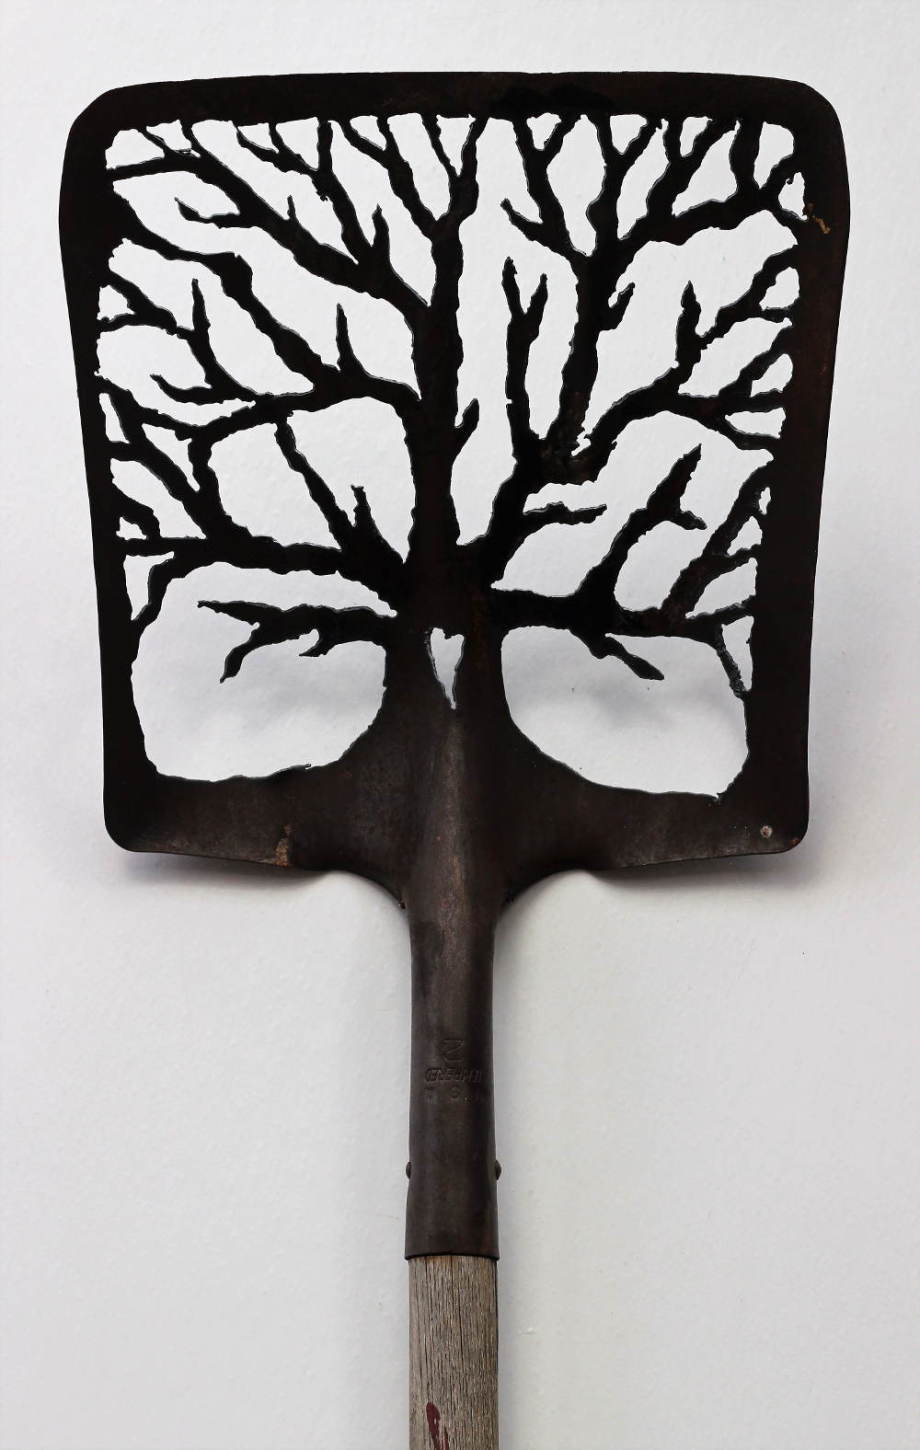 Oak Tree shovel